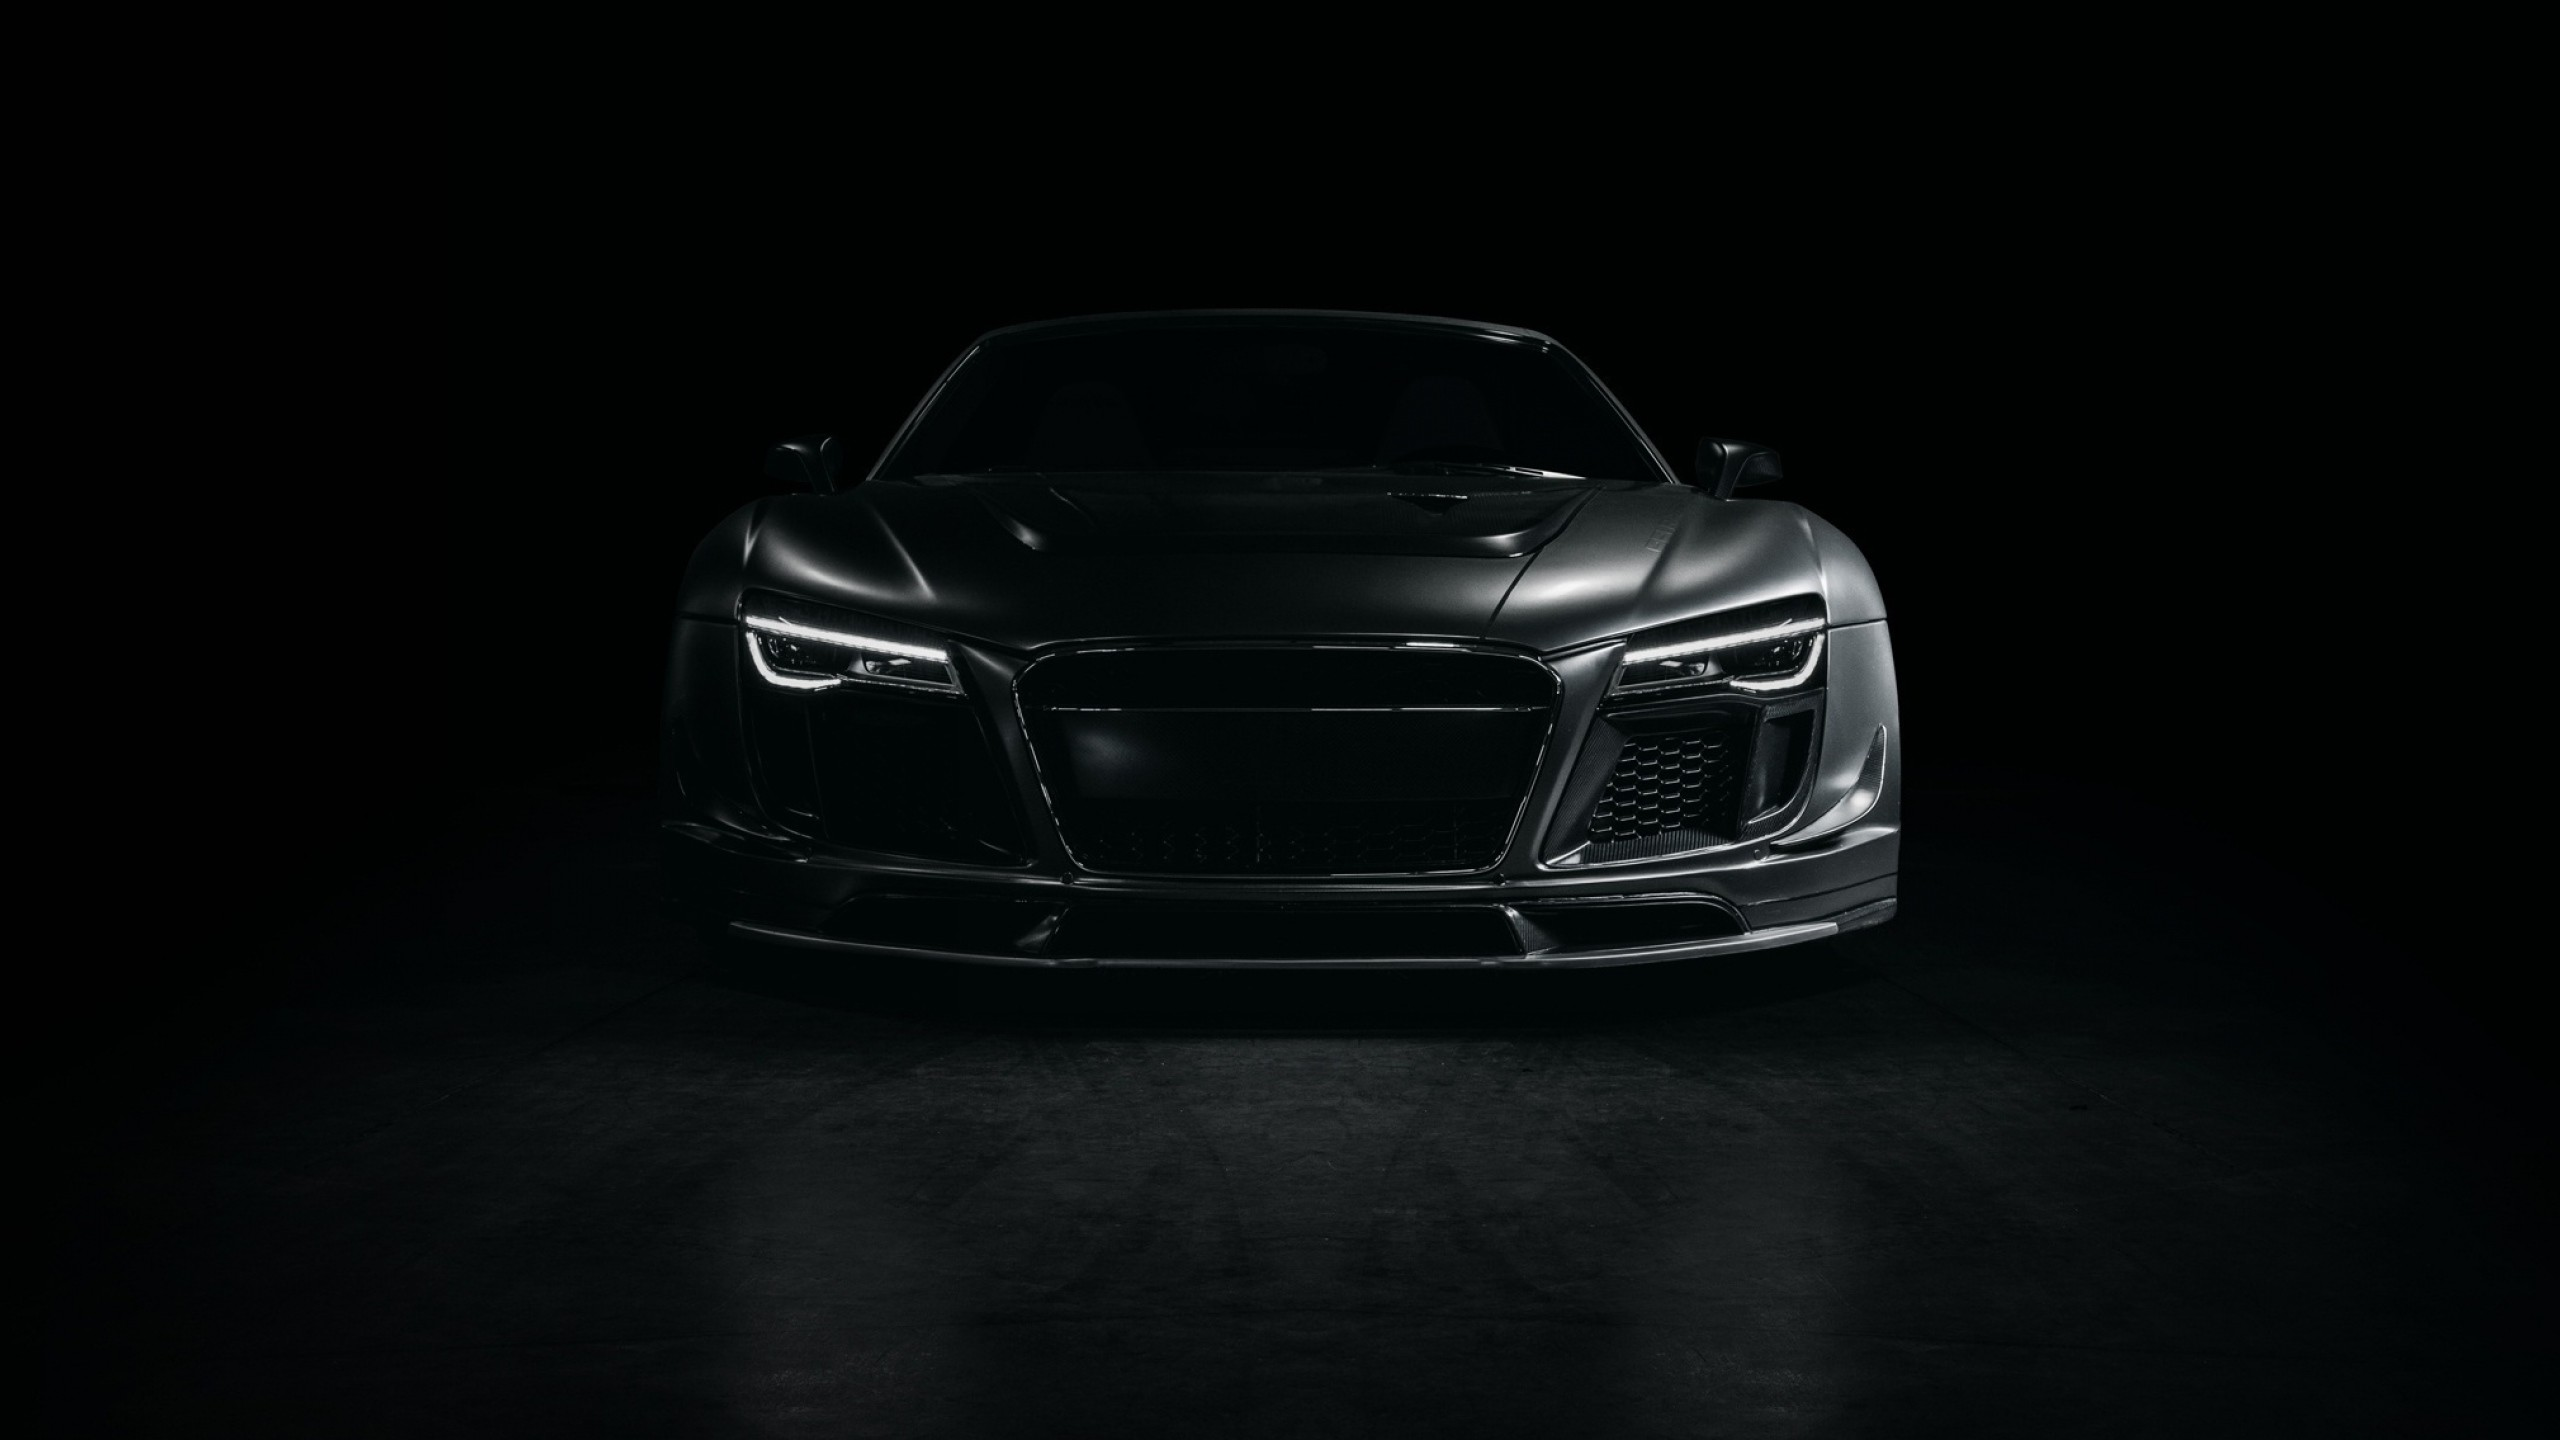 Wallpaper audi, r8, sports car, tuning, front view, black